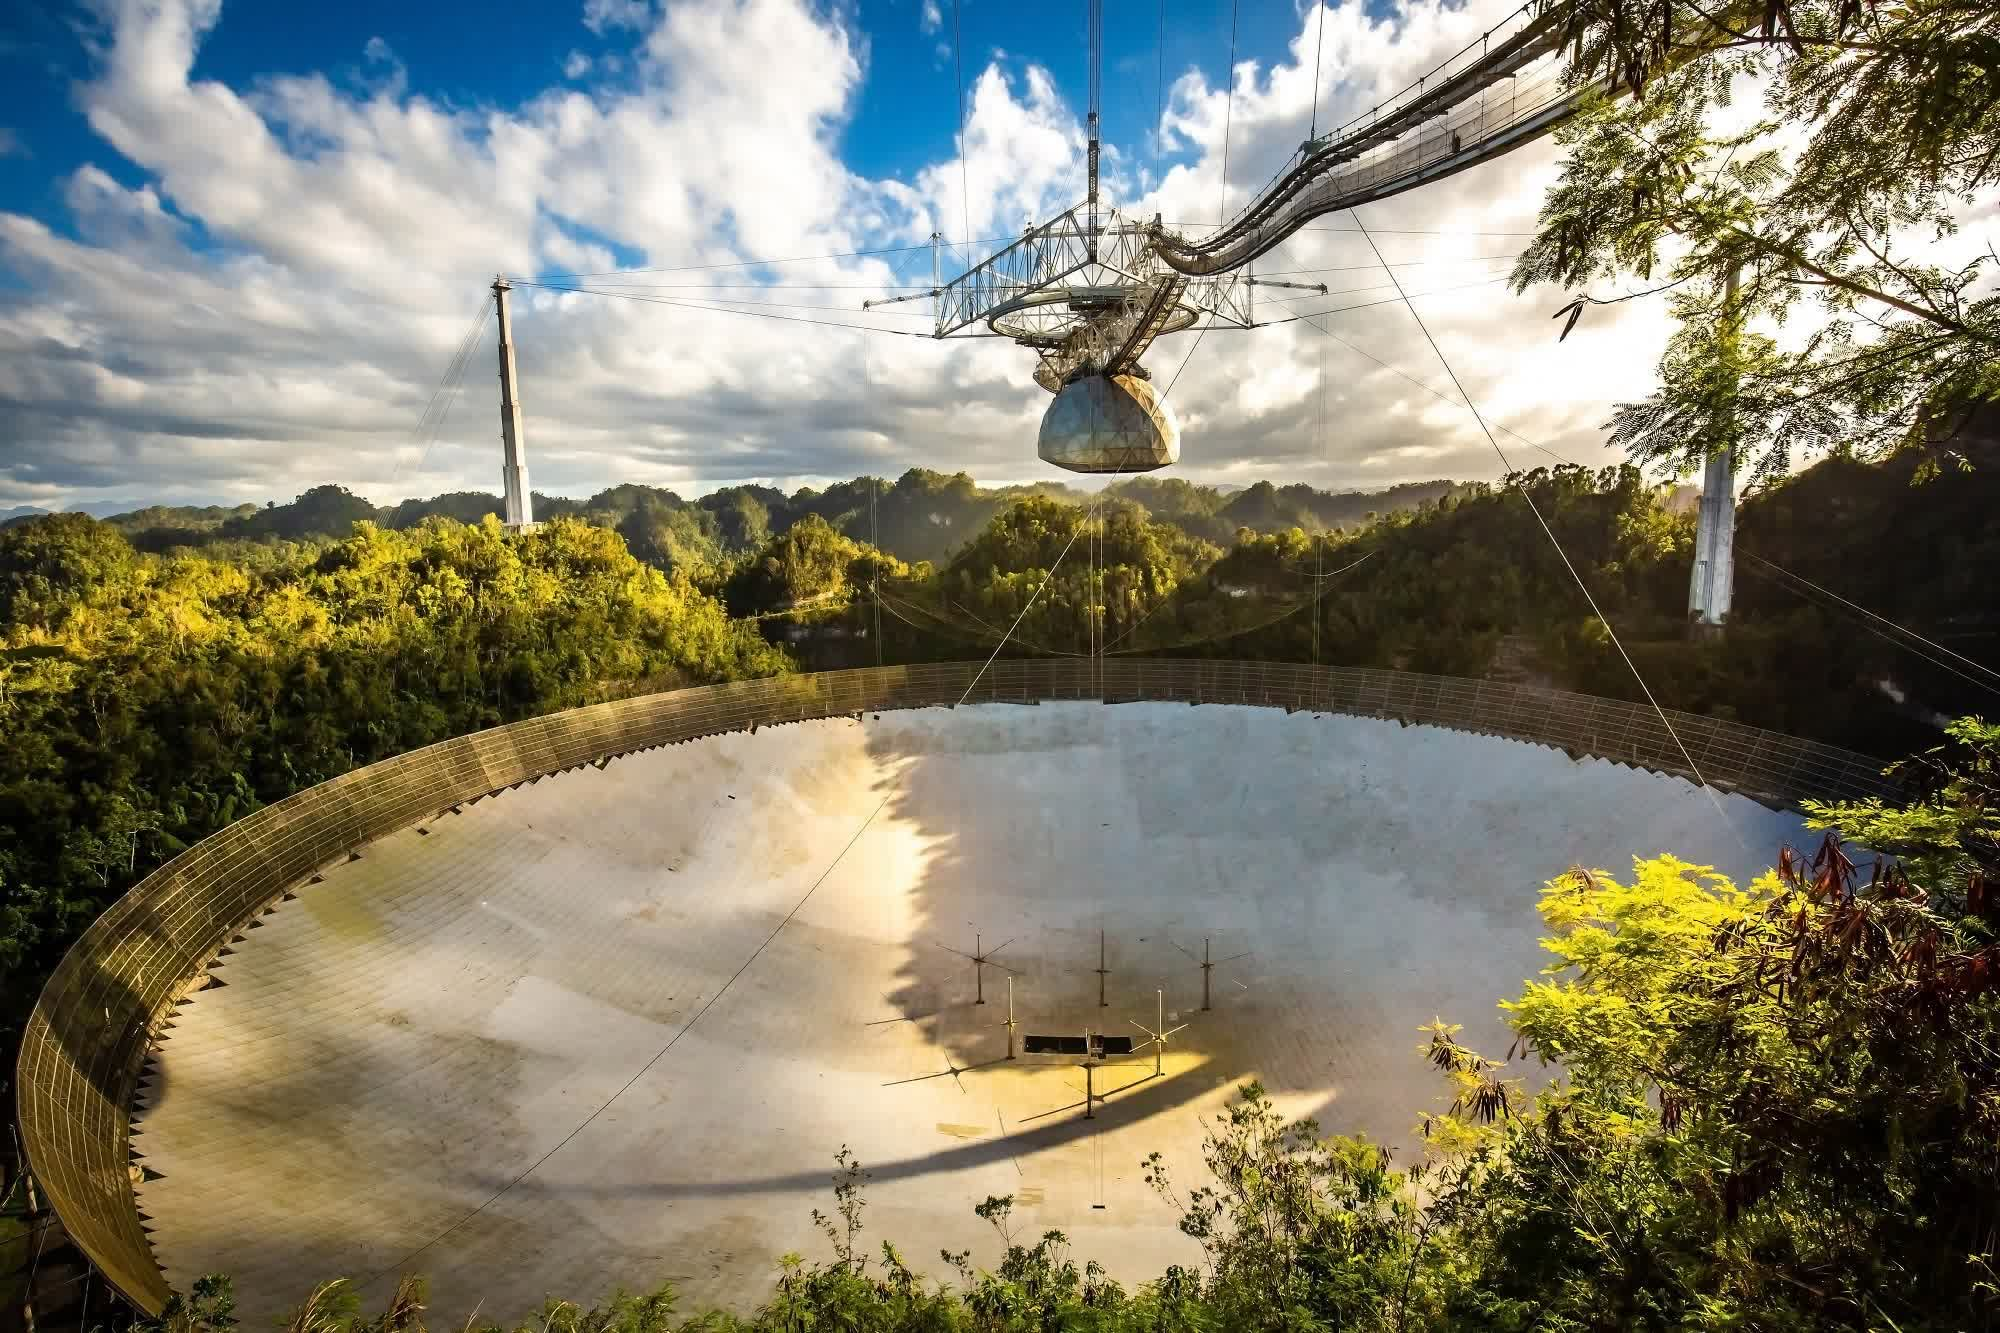 The iconic Arecibo space telescope is being decommissioned as it nears collapse